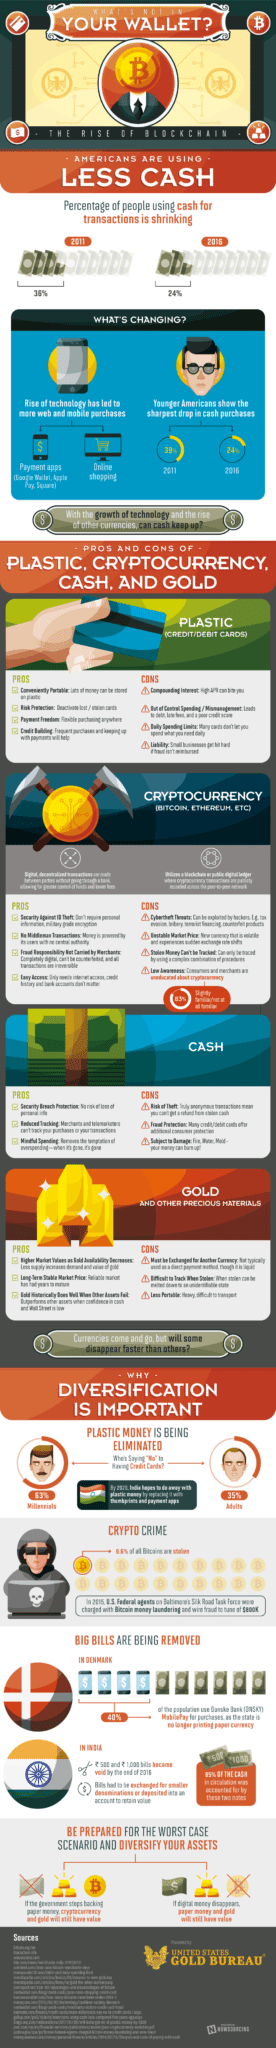 Currency Diversification: Why You Should Do It Now [Infographic] 1